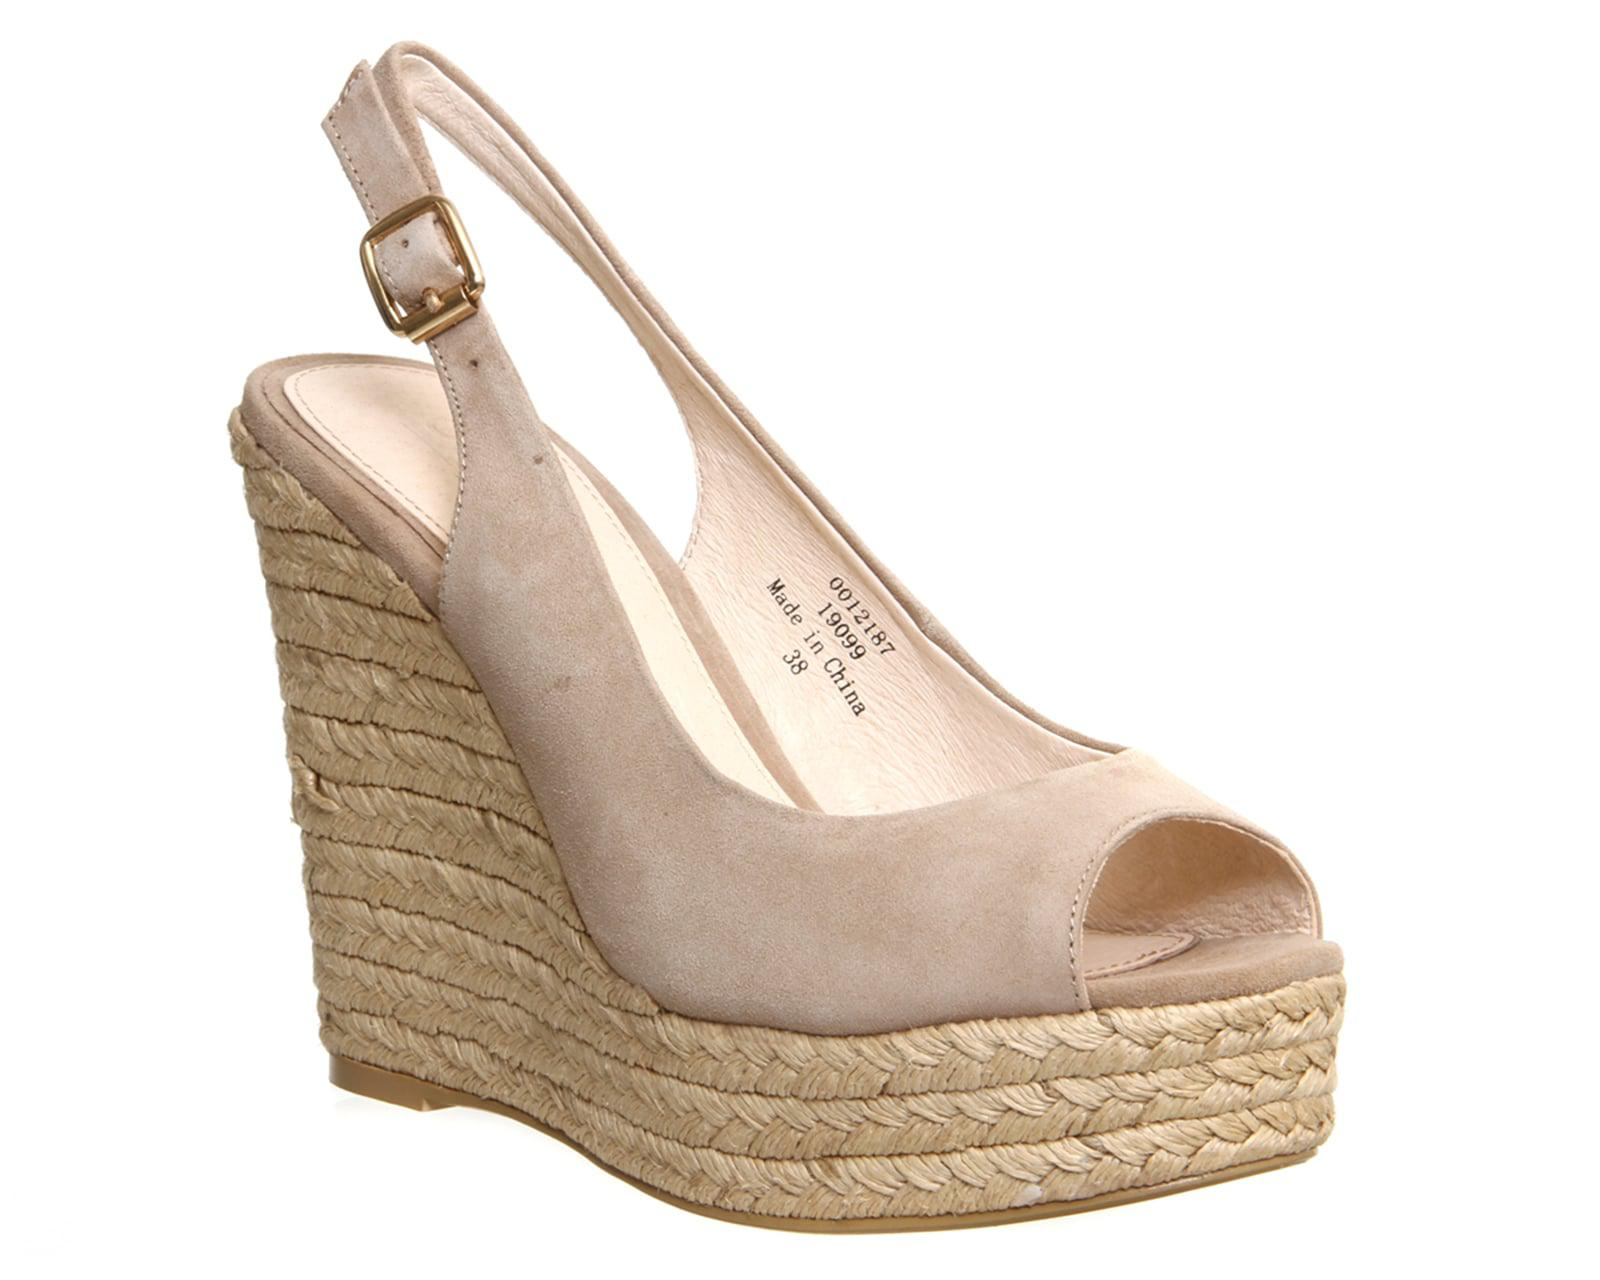 outlet online fashion style new high Office Suede Palm Slingback Espadrille Wedges in Taupe (Natural ...